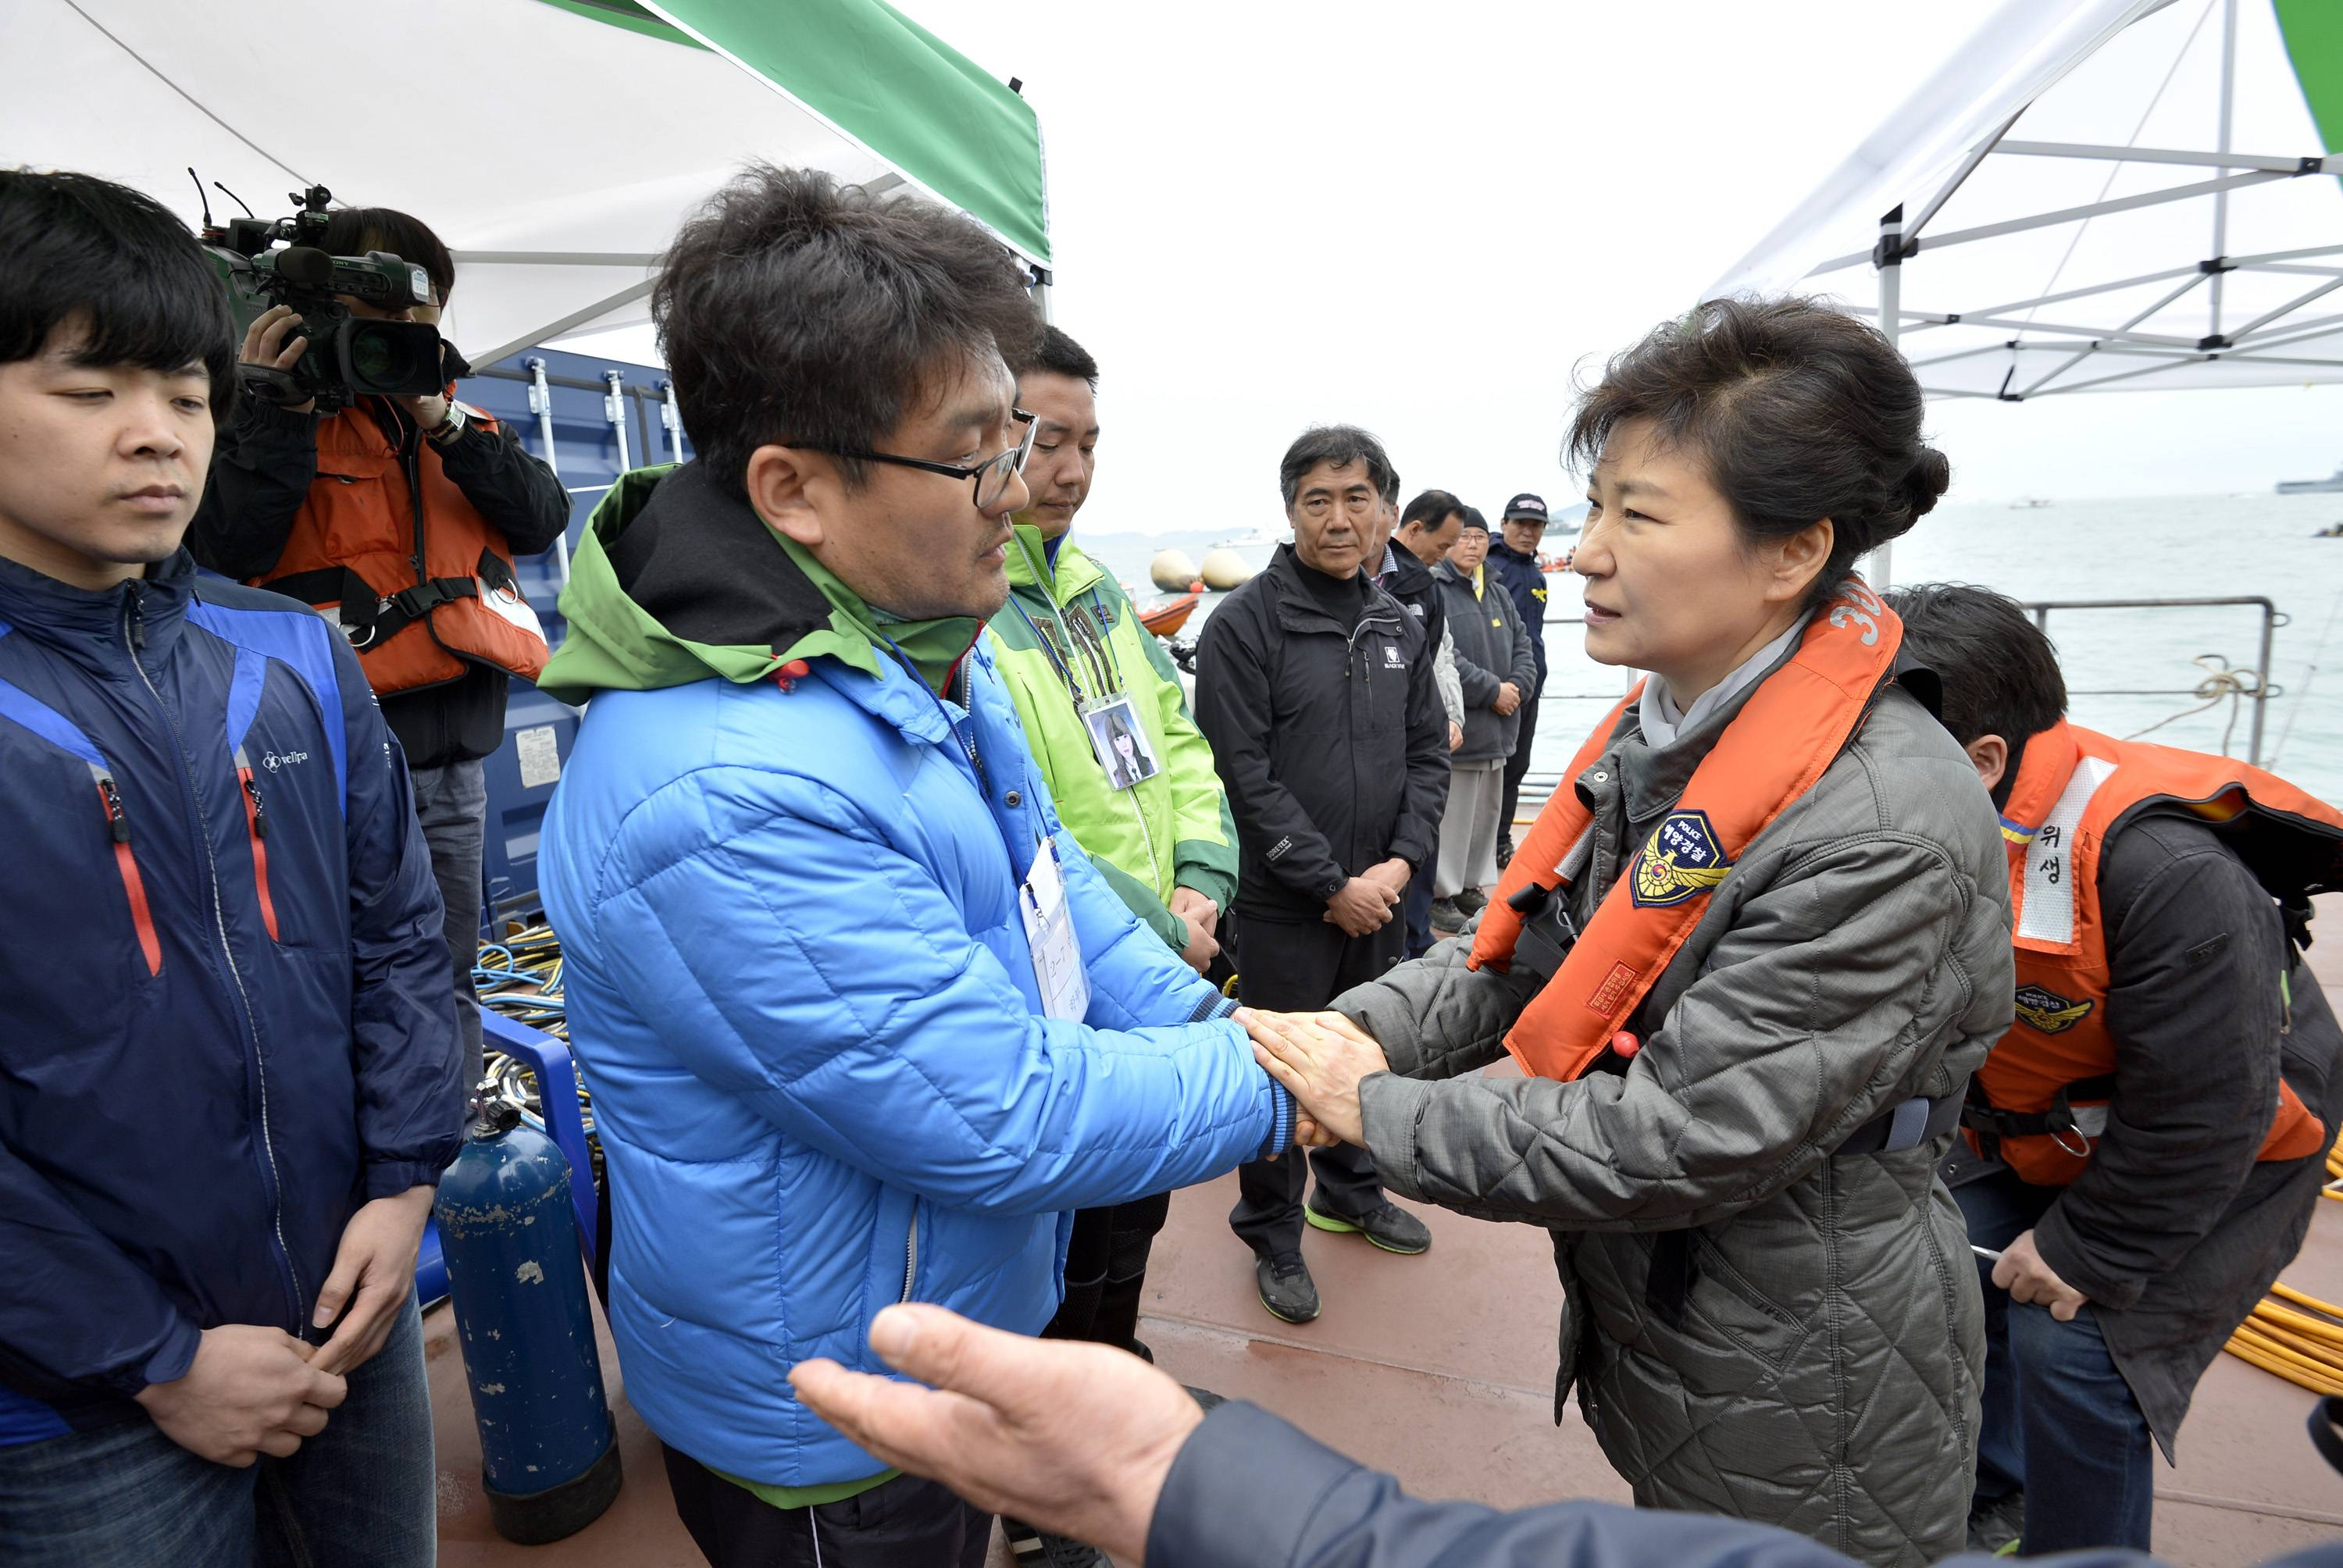 South Korean President Park Geun-hye, right, consoles a relative of a passenger aboard the sunken Sewol ferry at the site where the ship sank in waters off the southern coast near Jindo, South Korea, Sunday. Park told families of those missing in the sunken ferry that her heart breaks knowing what they are going through, as divers recovered two more bodies on Sunday.